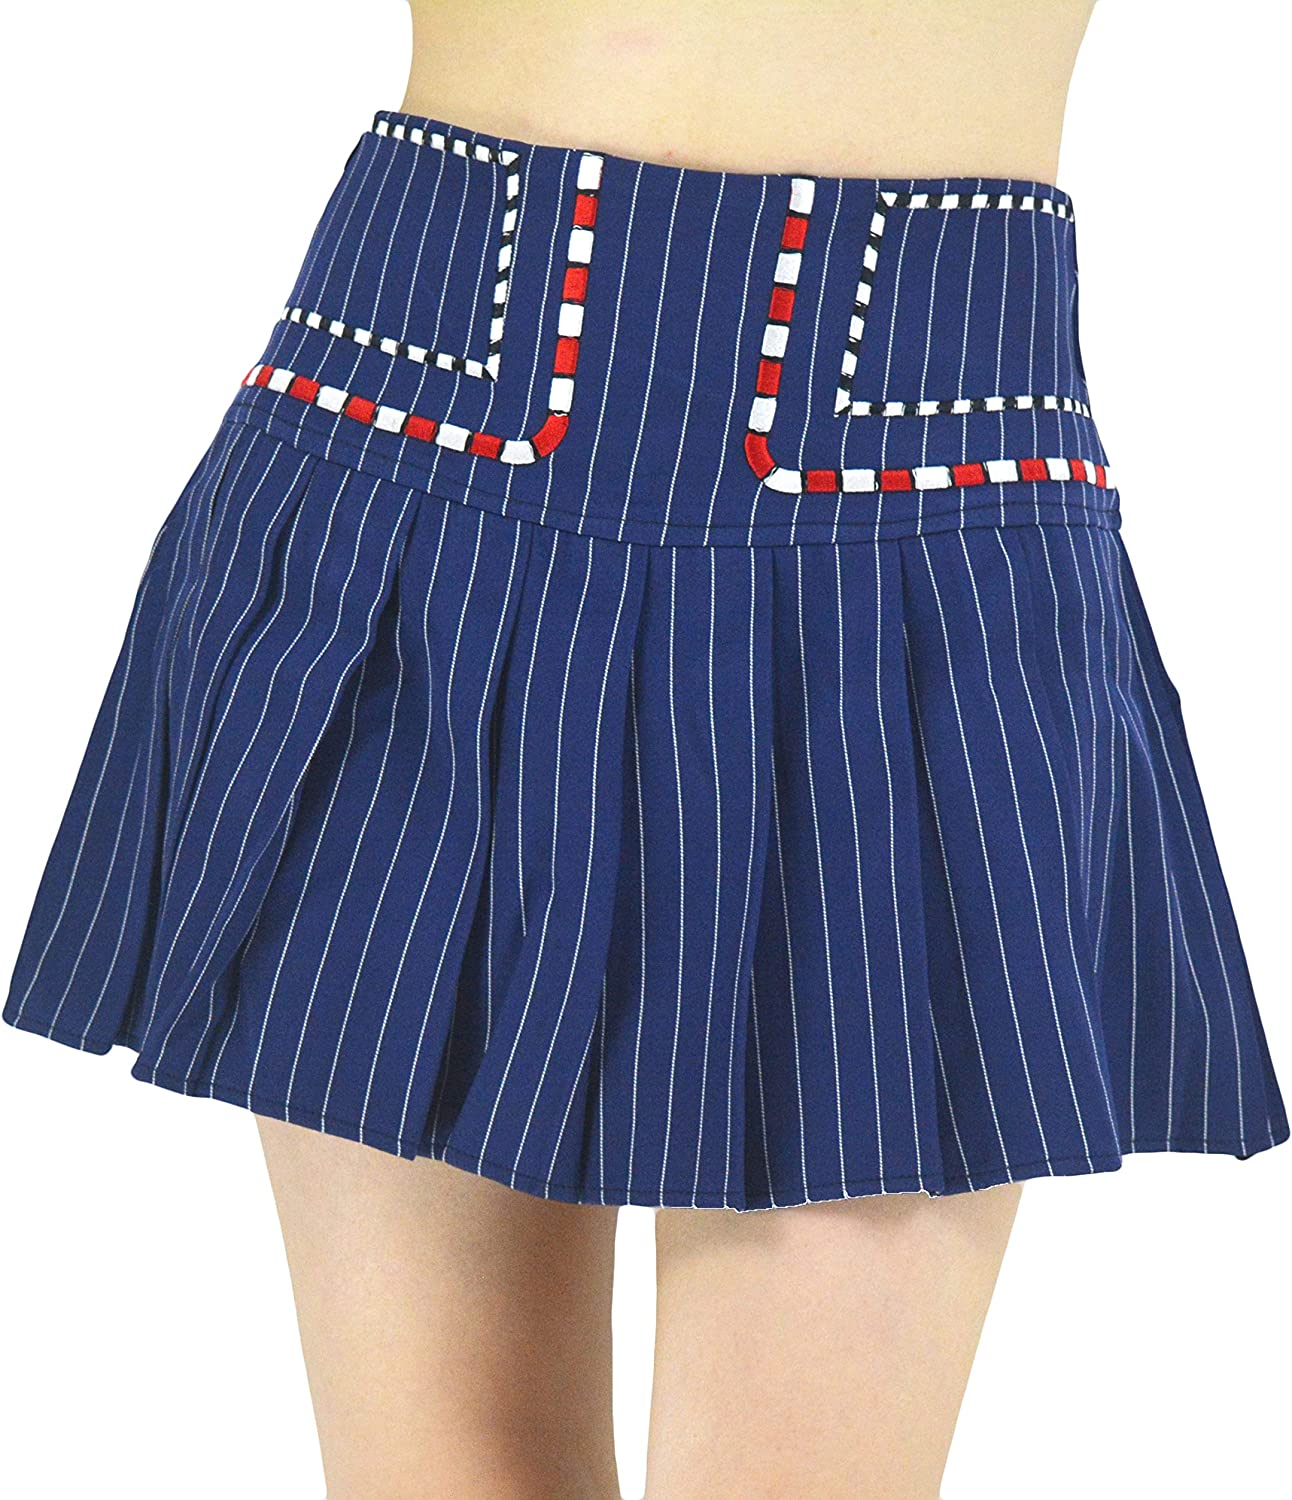 YSJERA Women's High Waisted Pleated Mini A Line Skater Skirts with Pockets Solid Color